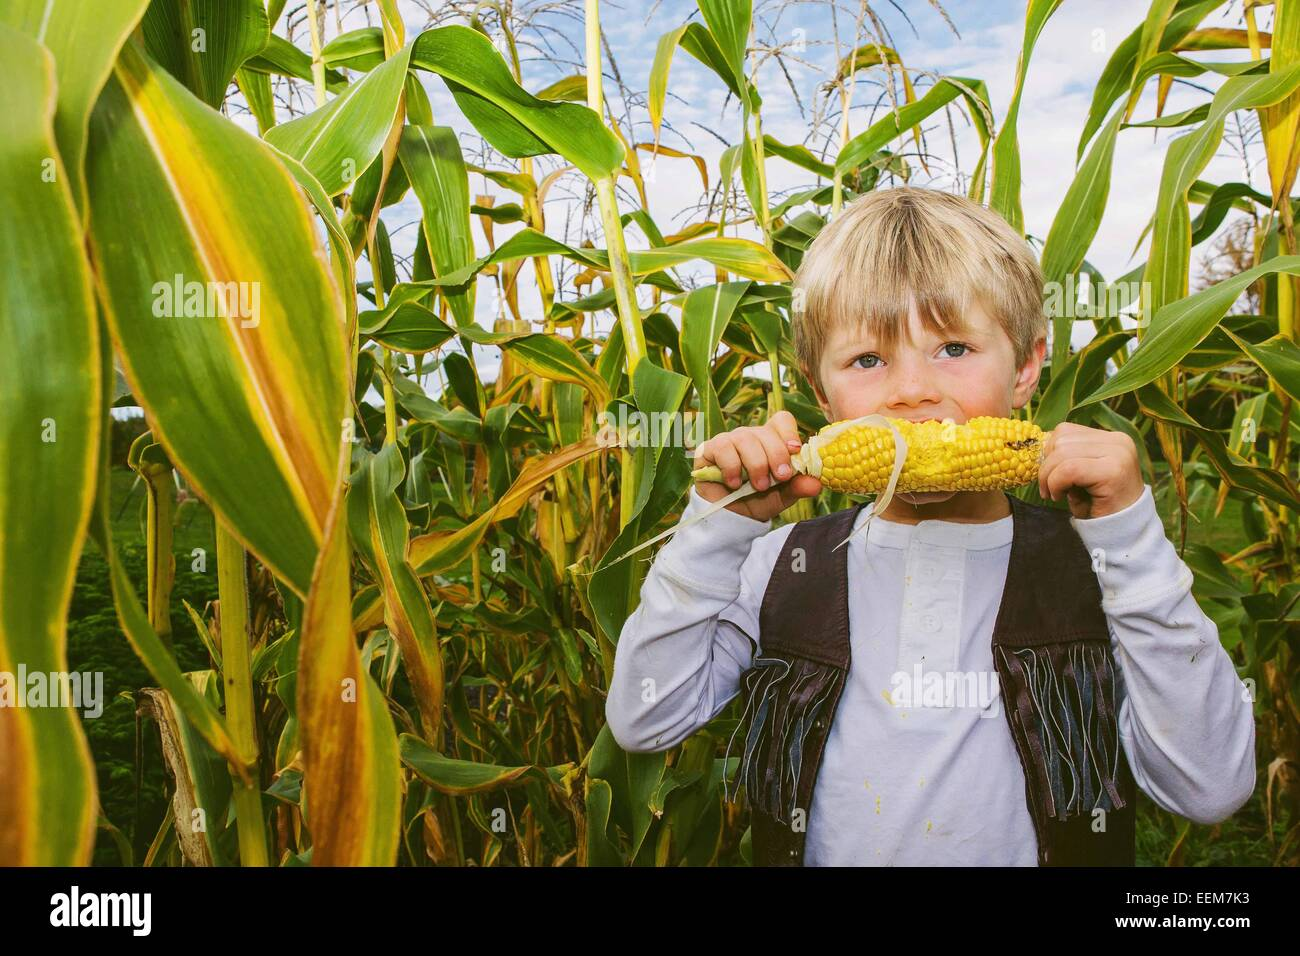 Boy (4-5) eating corn among corn crop - Stock Image